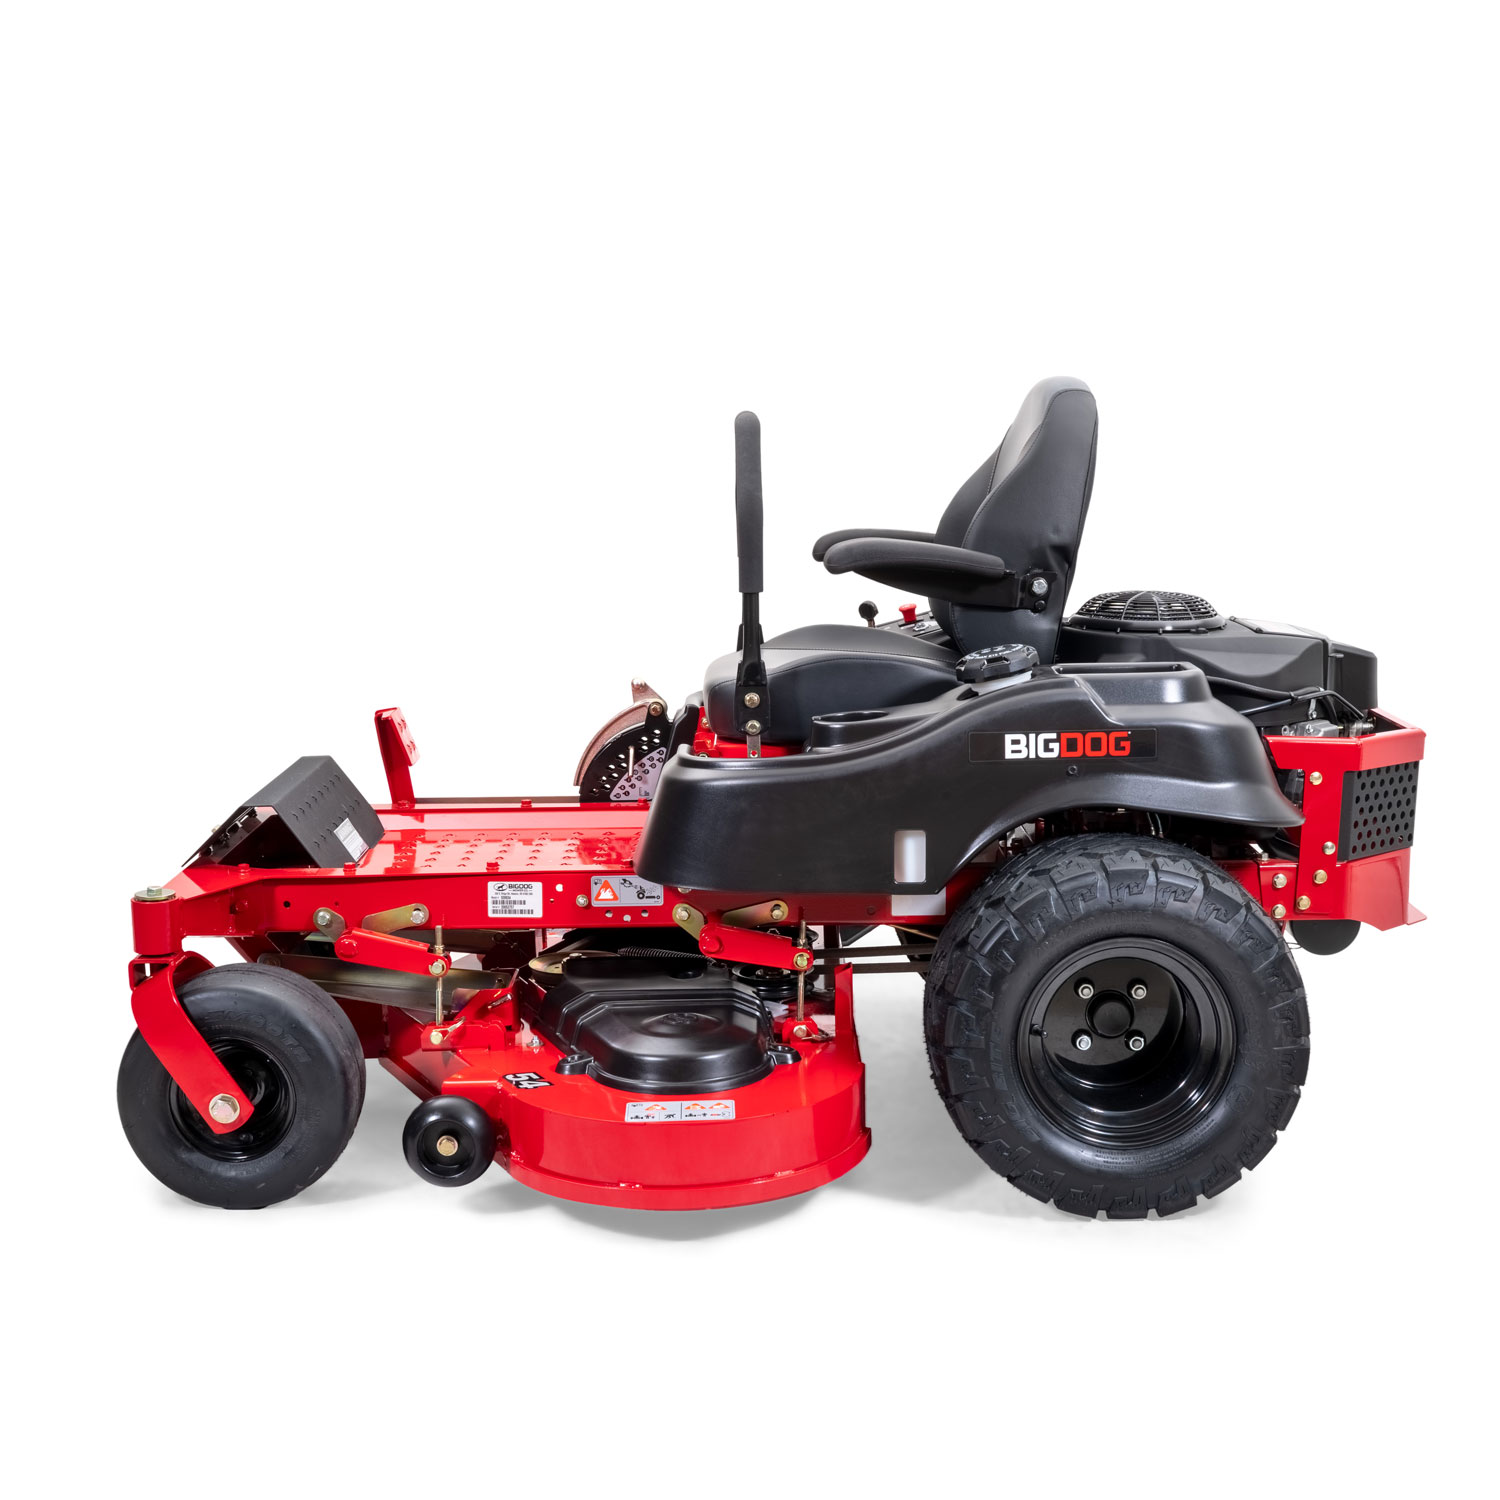 Image of the side of a red riding mower